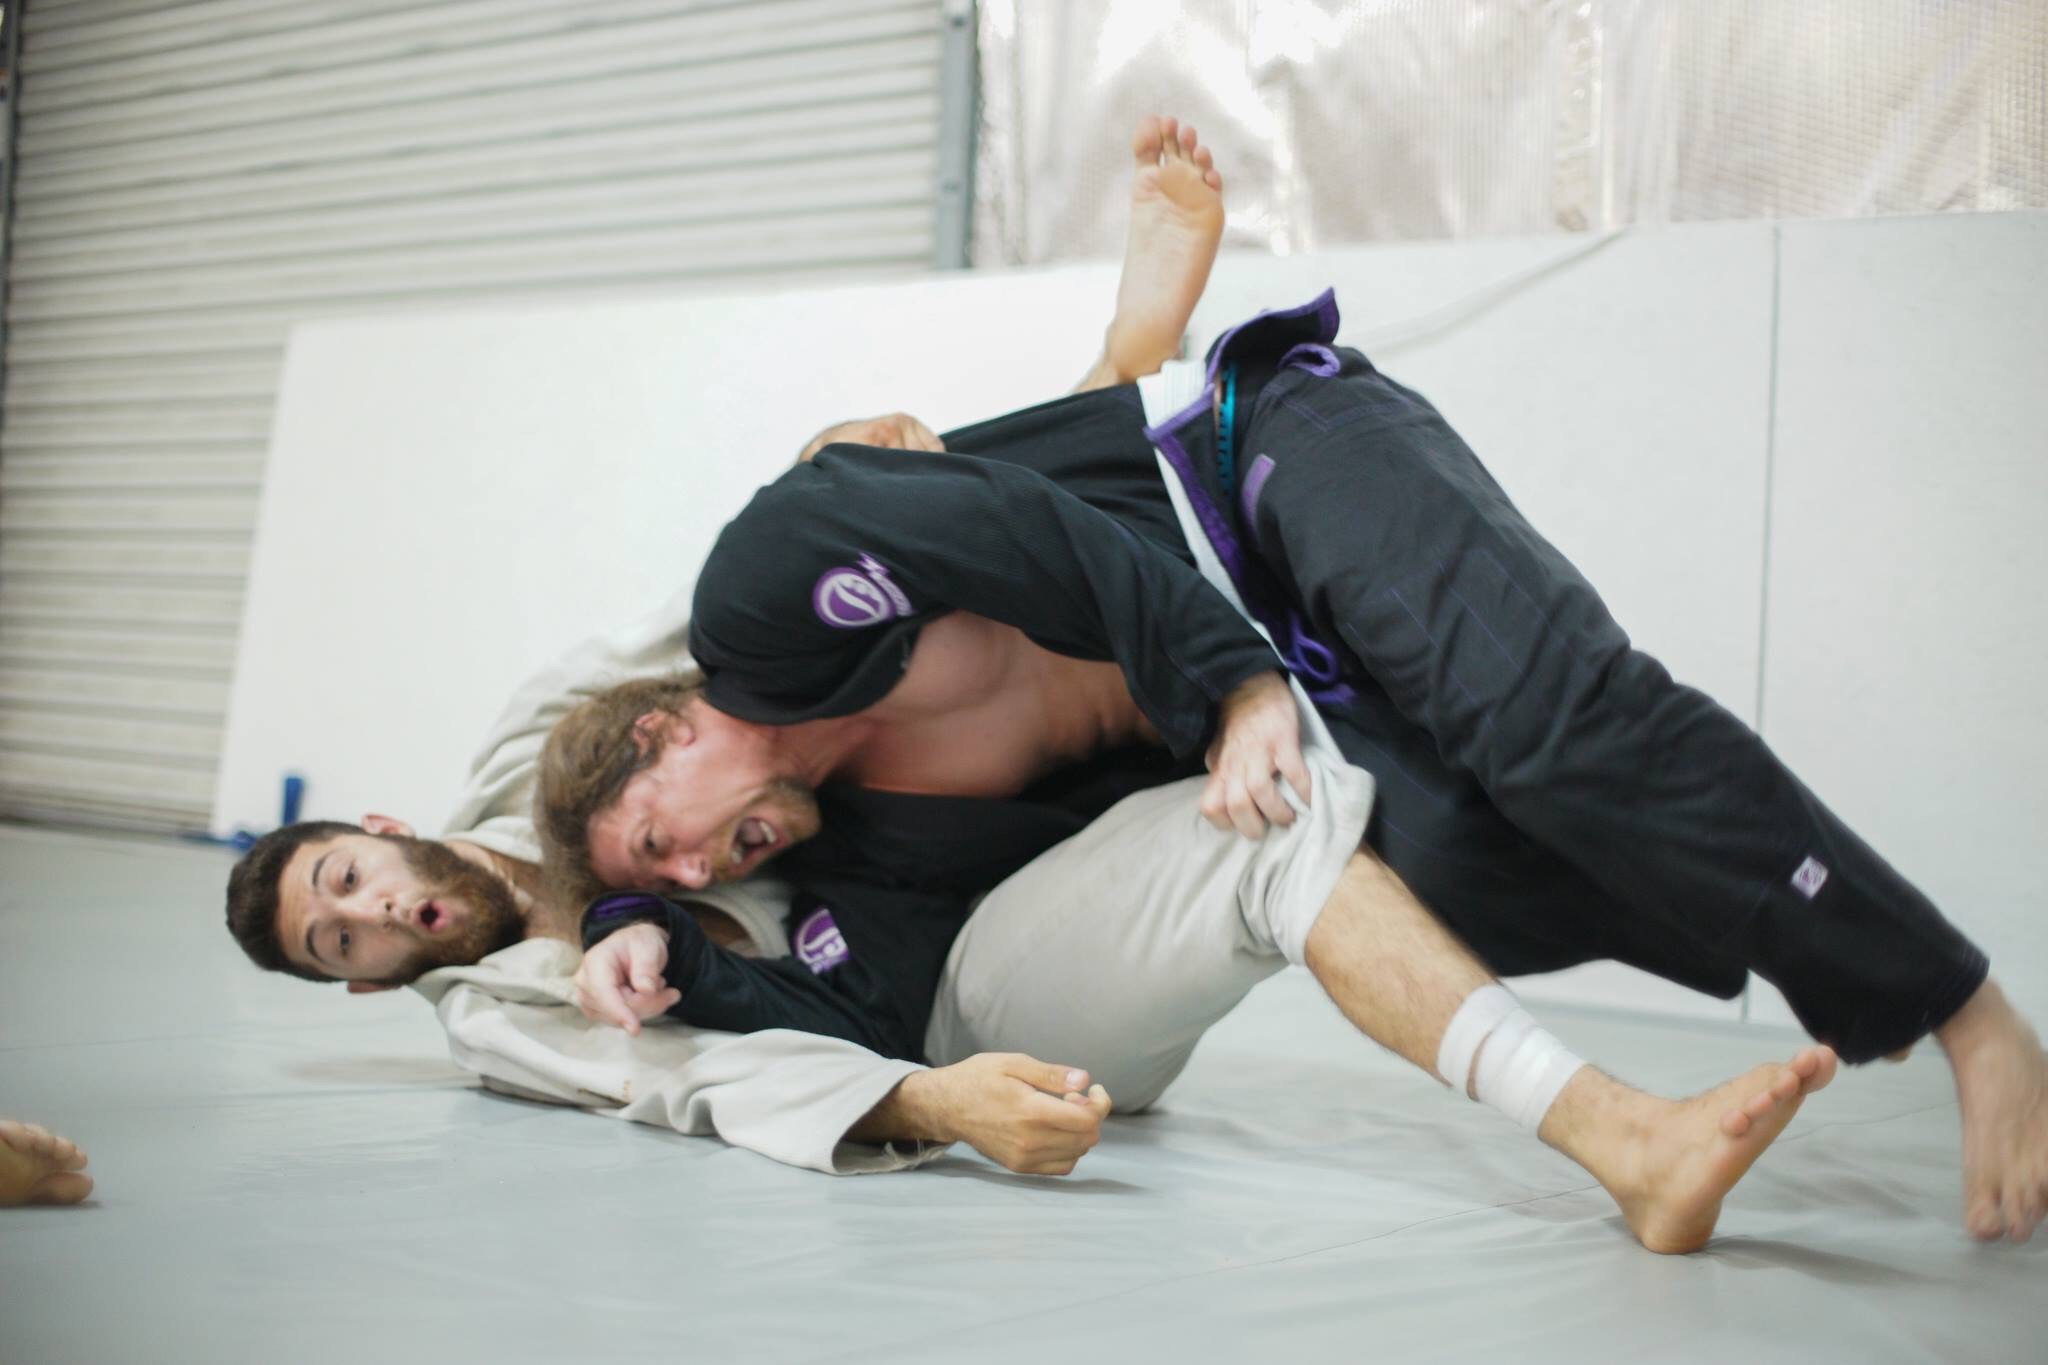 Hank practicing a submission